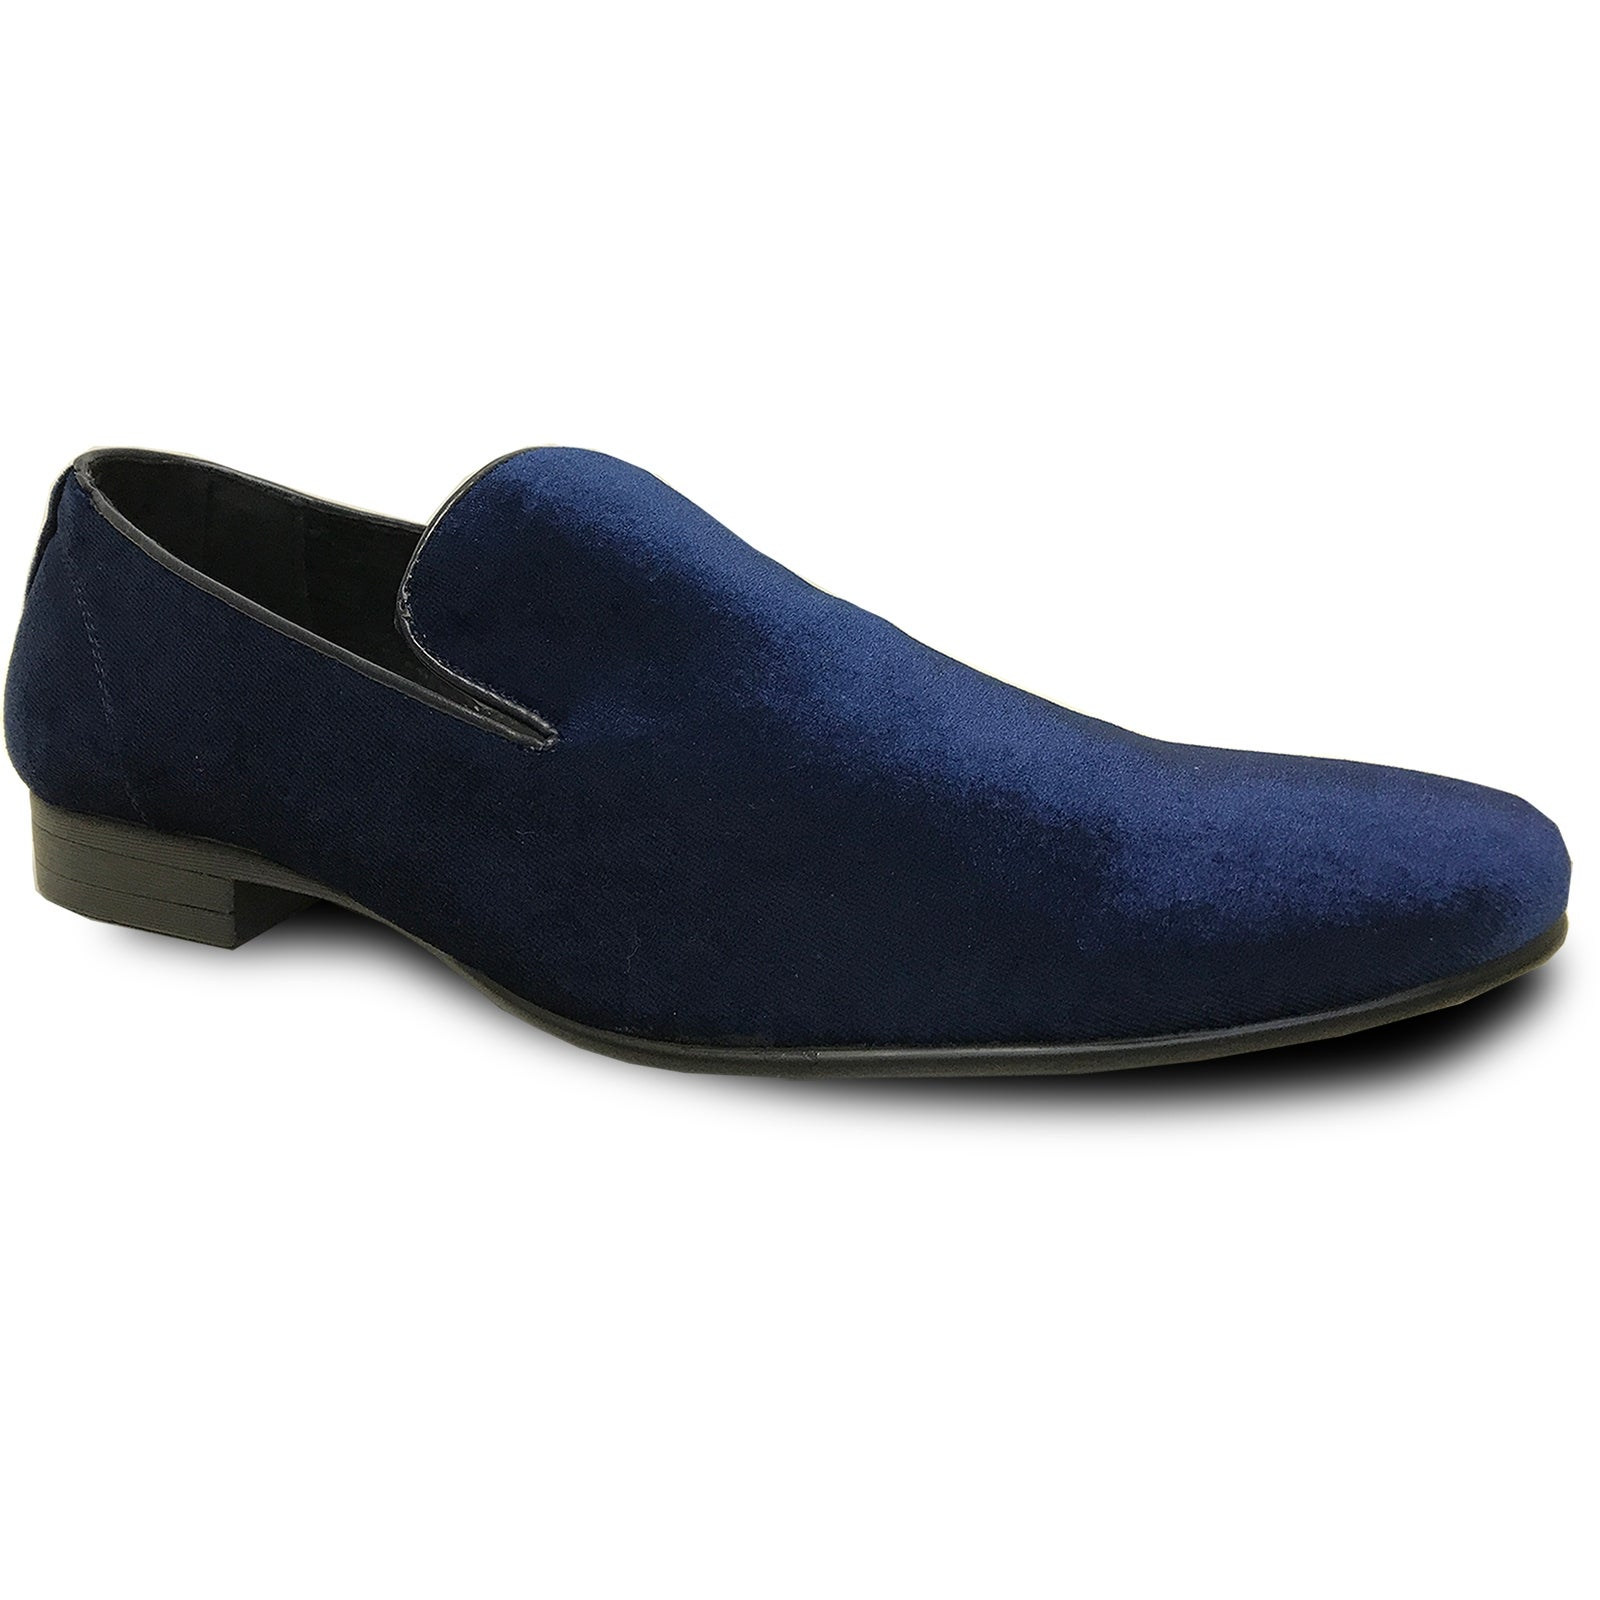 Men Dress Shoe Klein-7 Loafer With Leather Lining - Blue Velvet